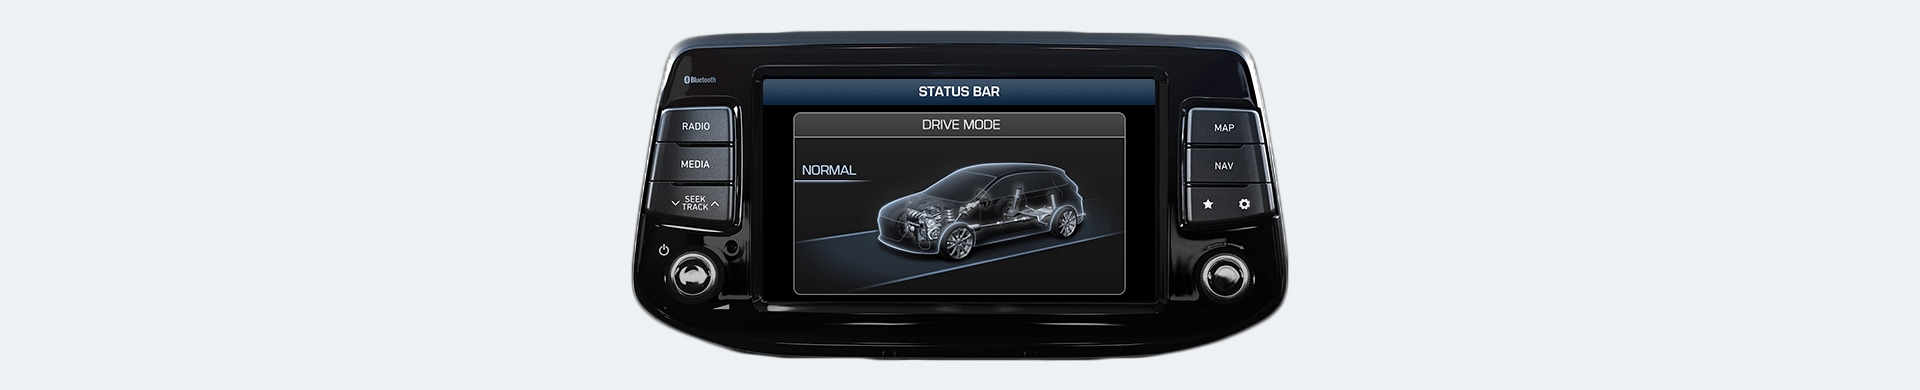 Hyundai i30 N Drive Mode Normal Shown on Screen